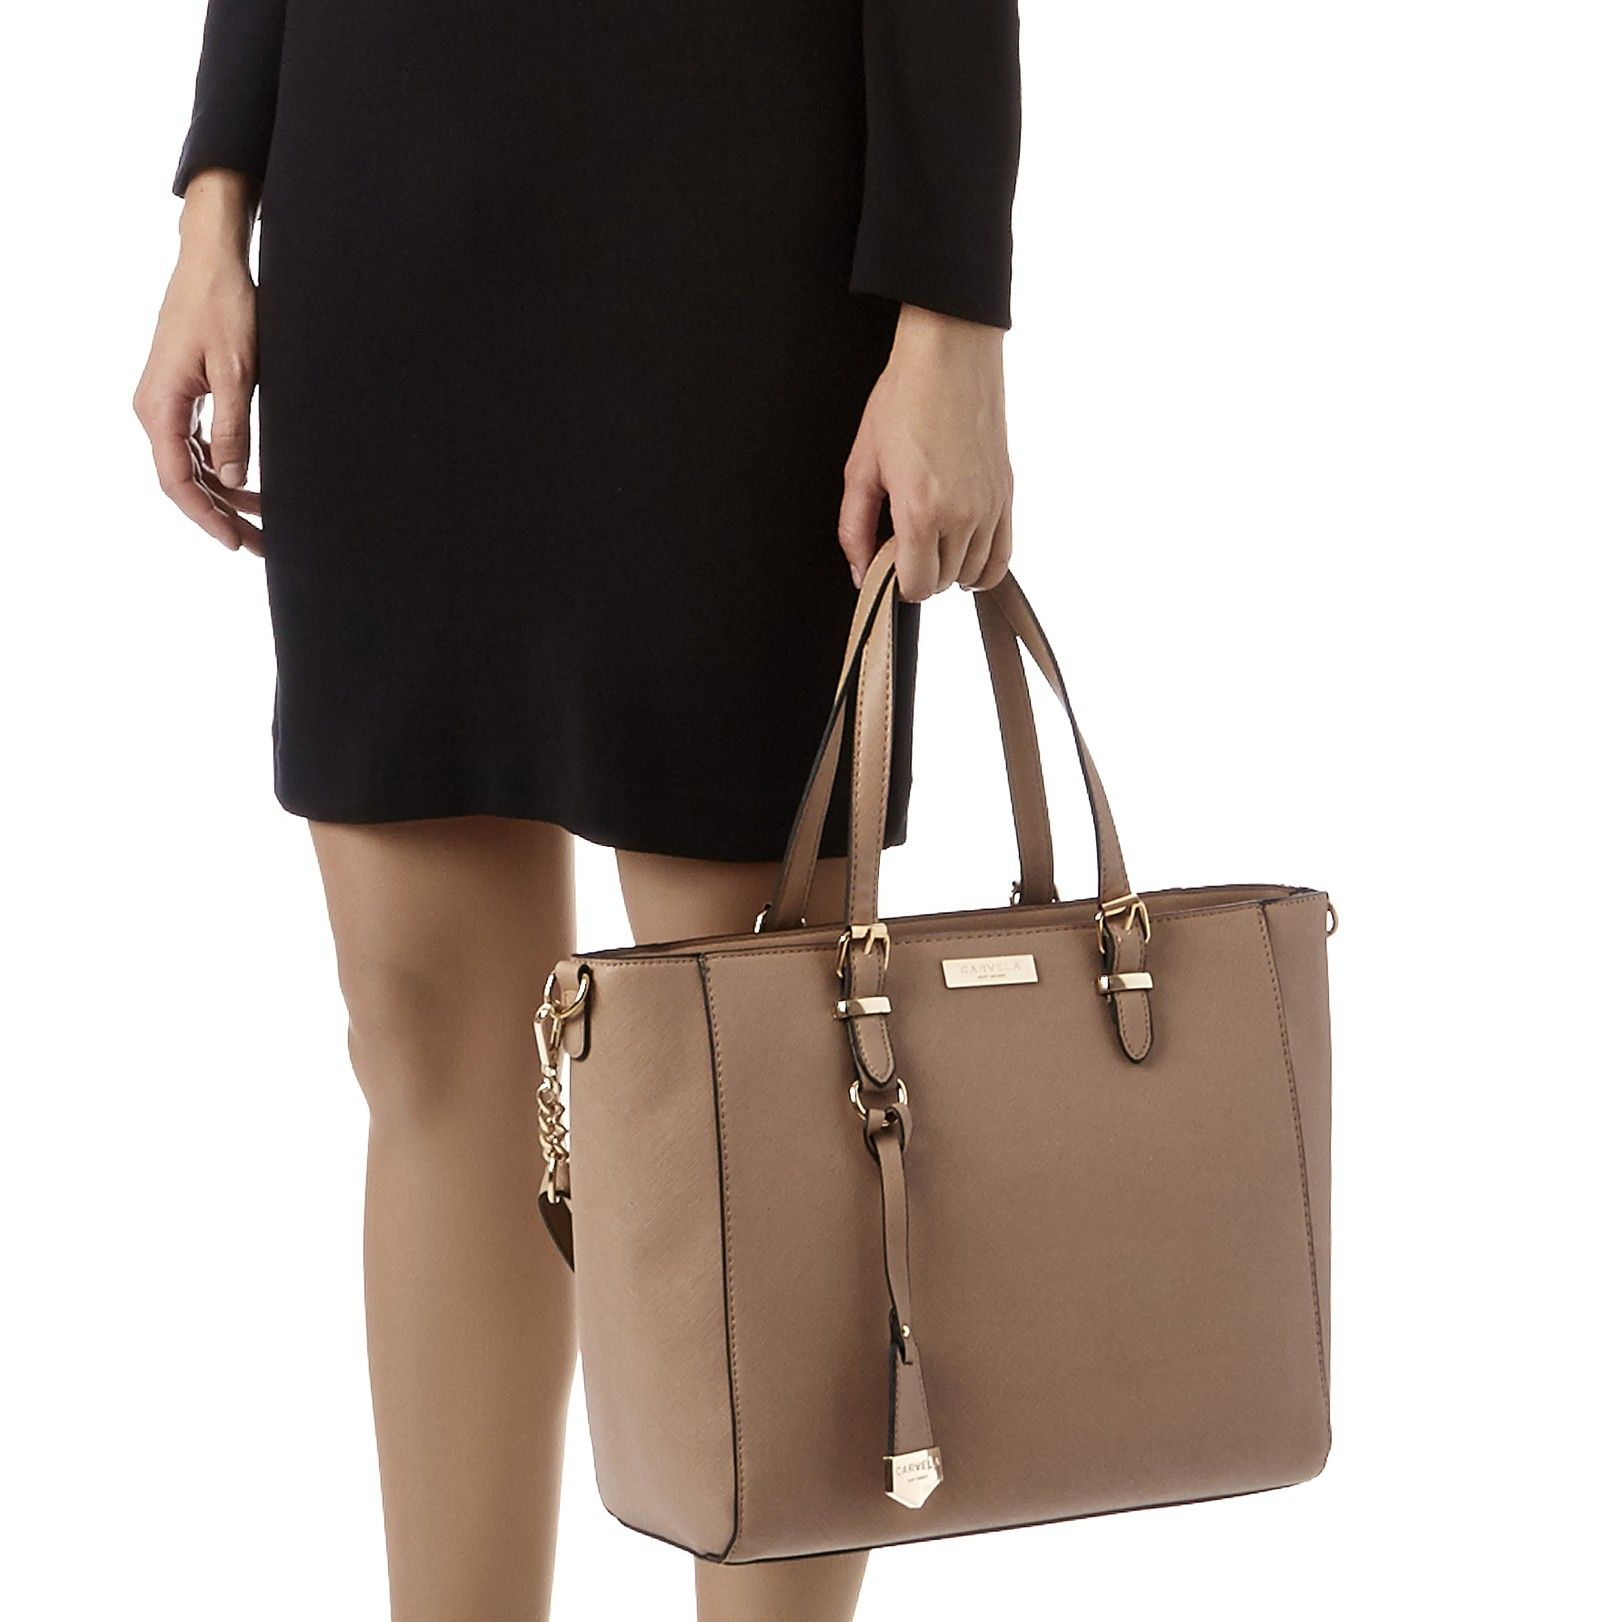 82785b939d dina winged tote nude tote bag from Carvela Kurt Geiger